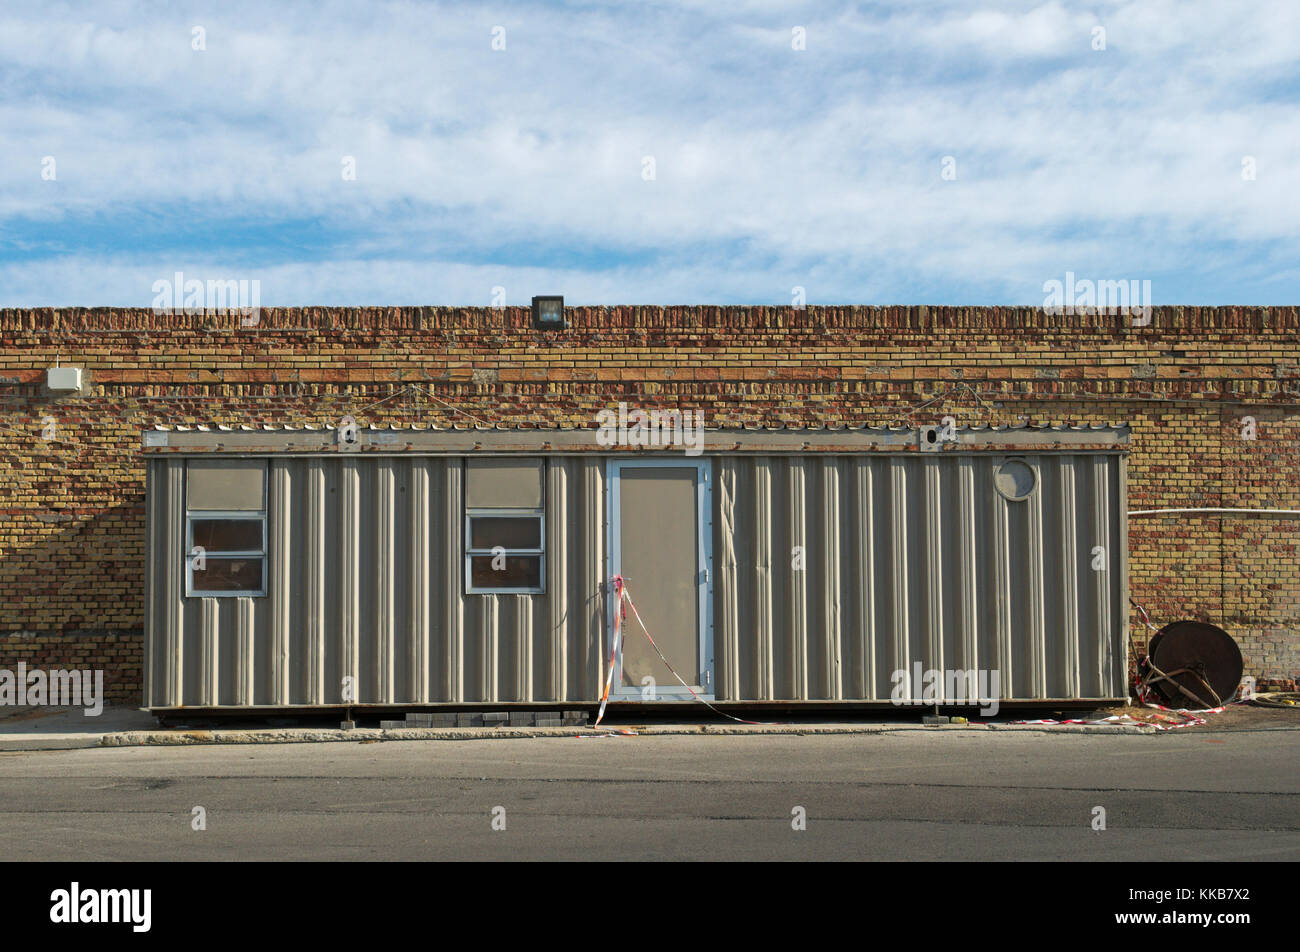 workers barrack shipping container - Stock Image